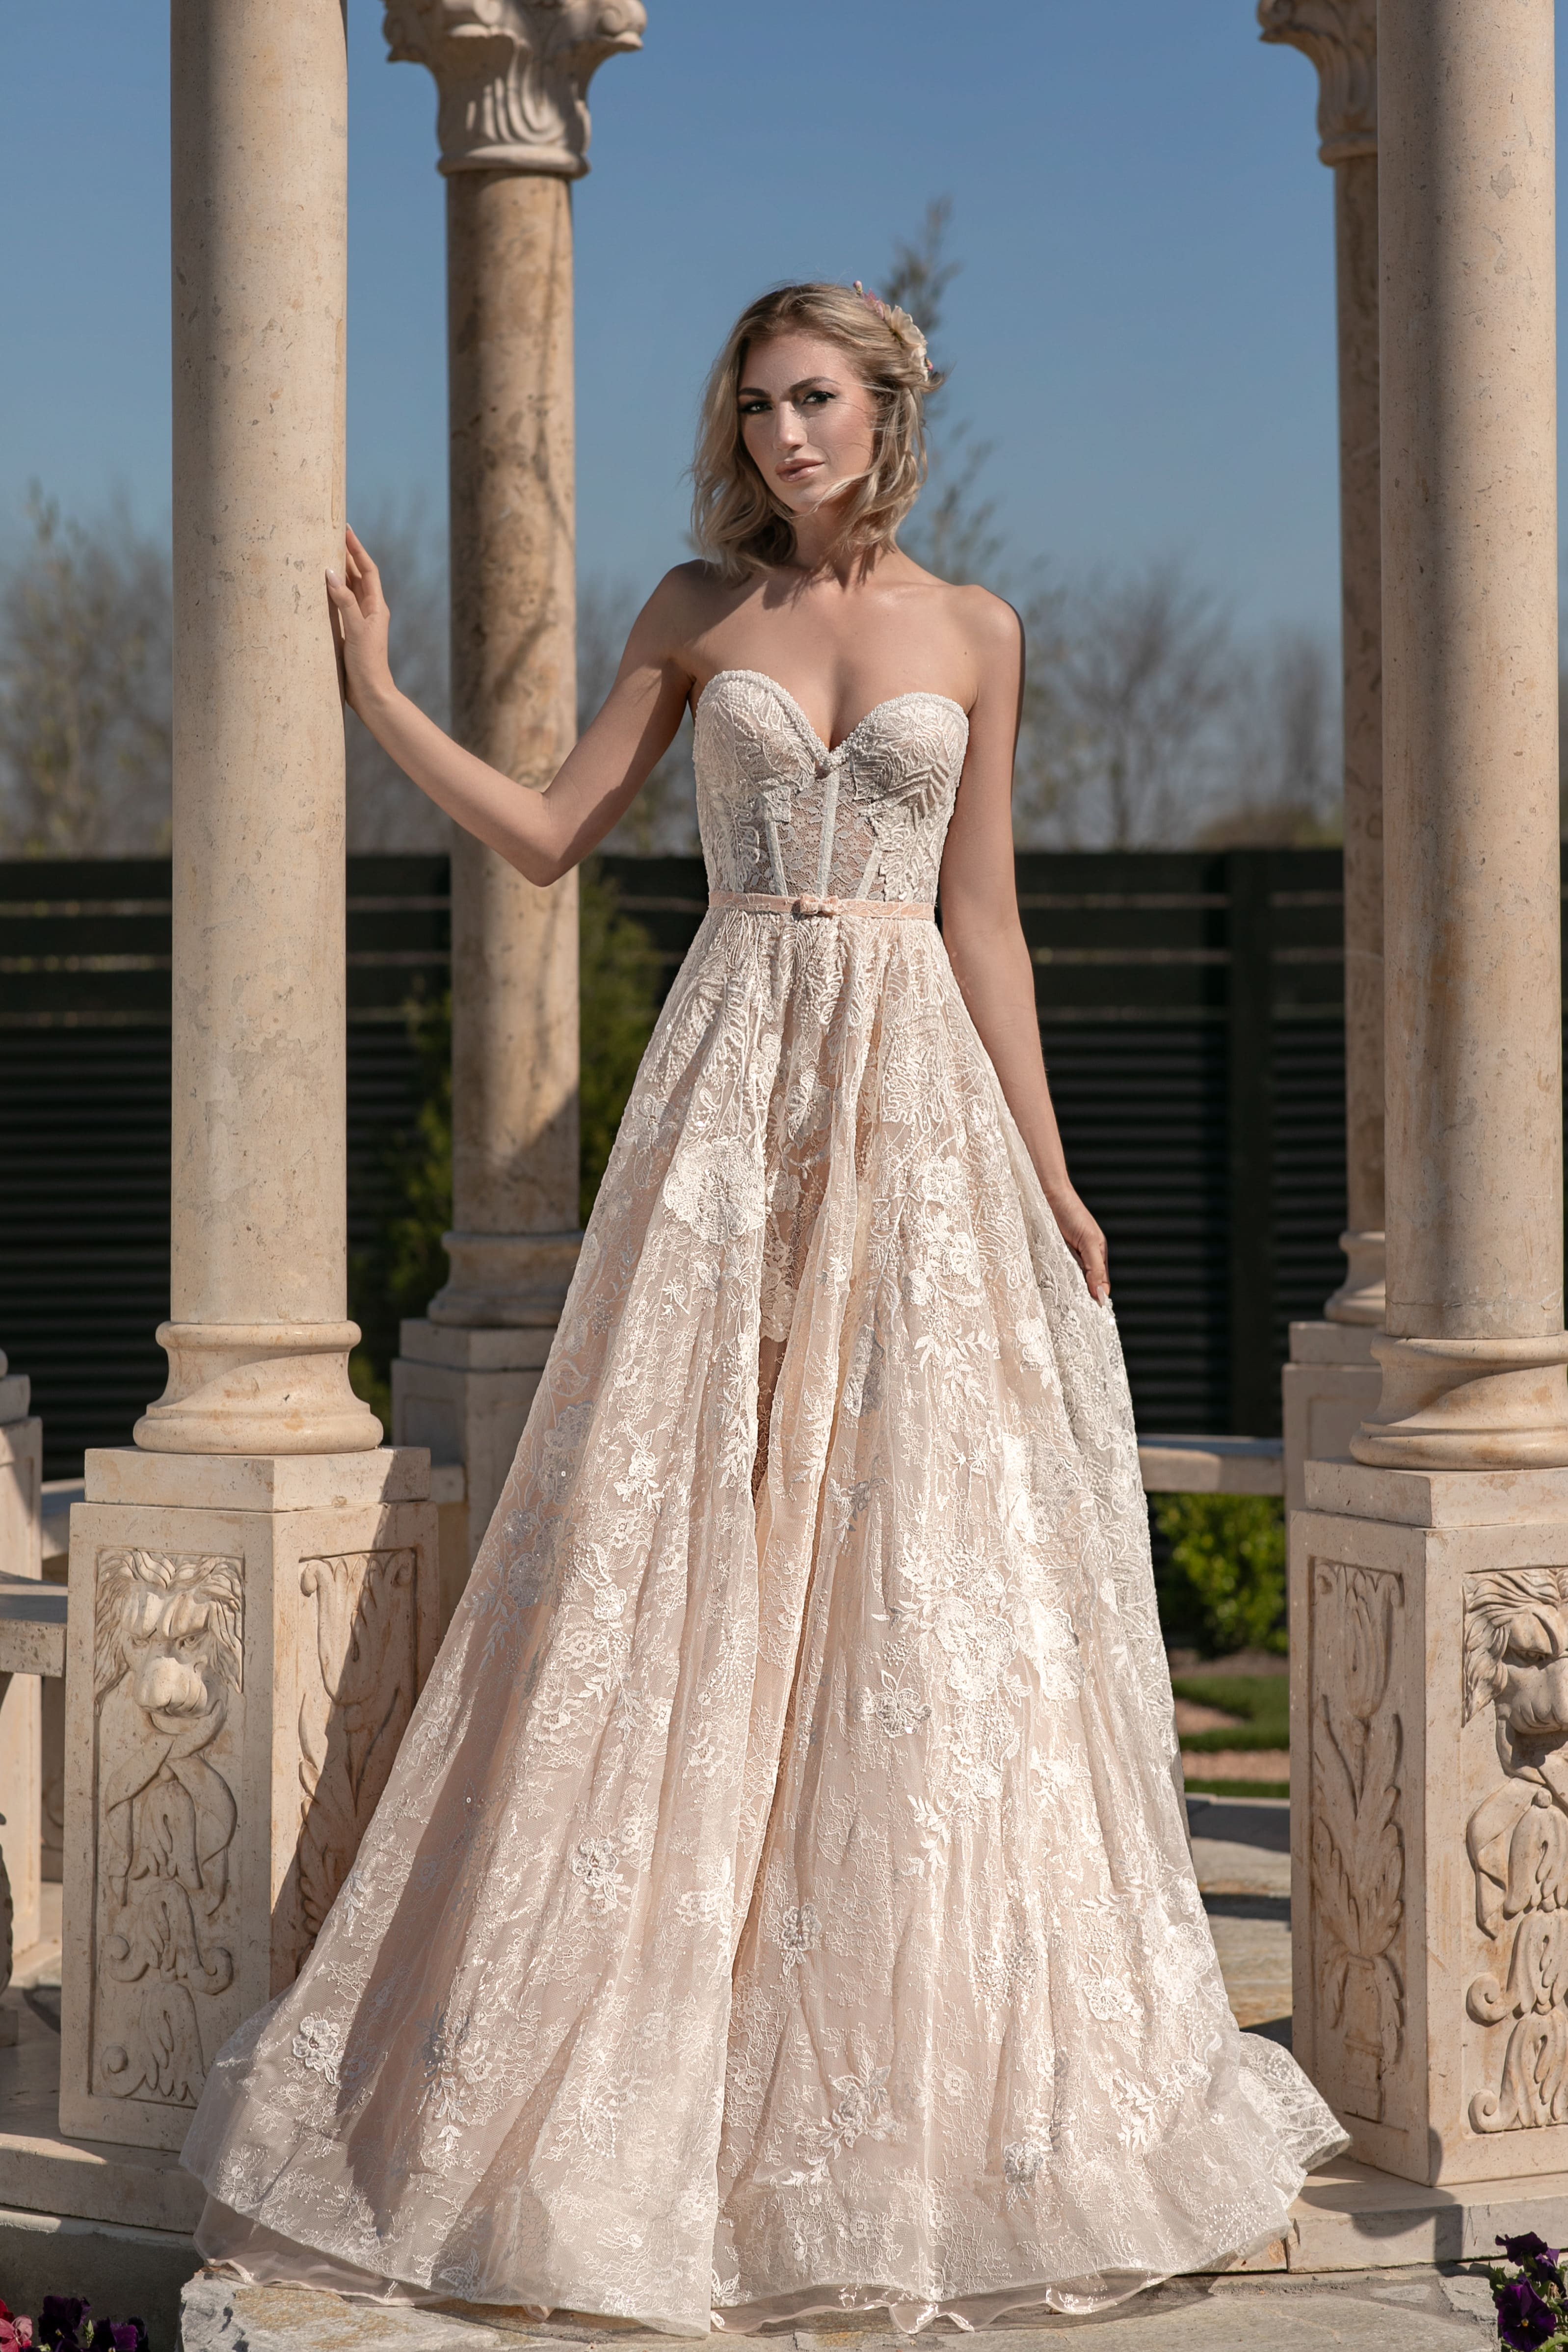 "Destination Brides Will Love Naama & Anat Haute Couture's New Collection ""Royal Blossom"", Rayce PR for Destination Wedding Blog Adriana Weddings"